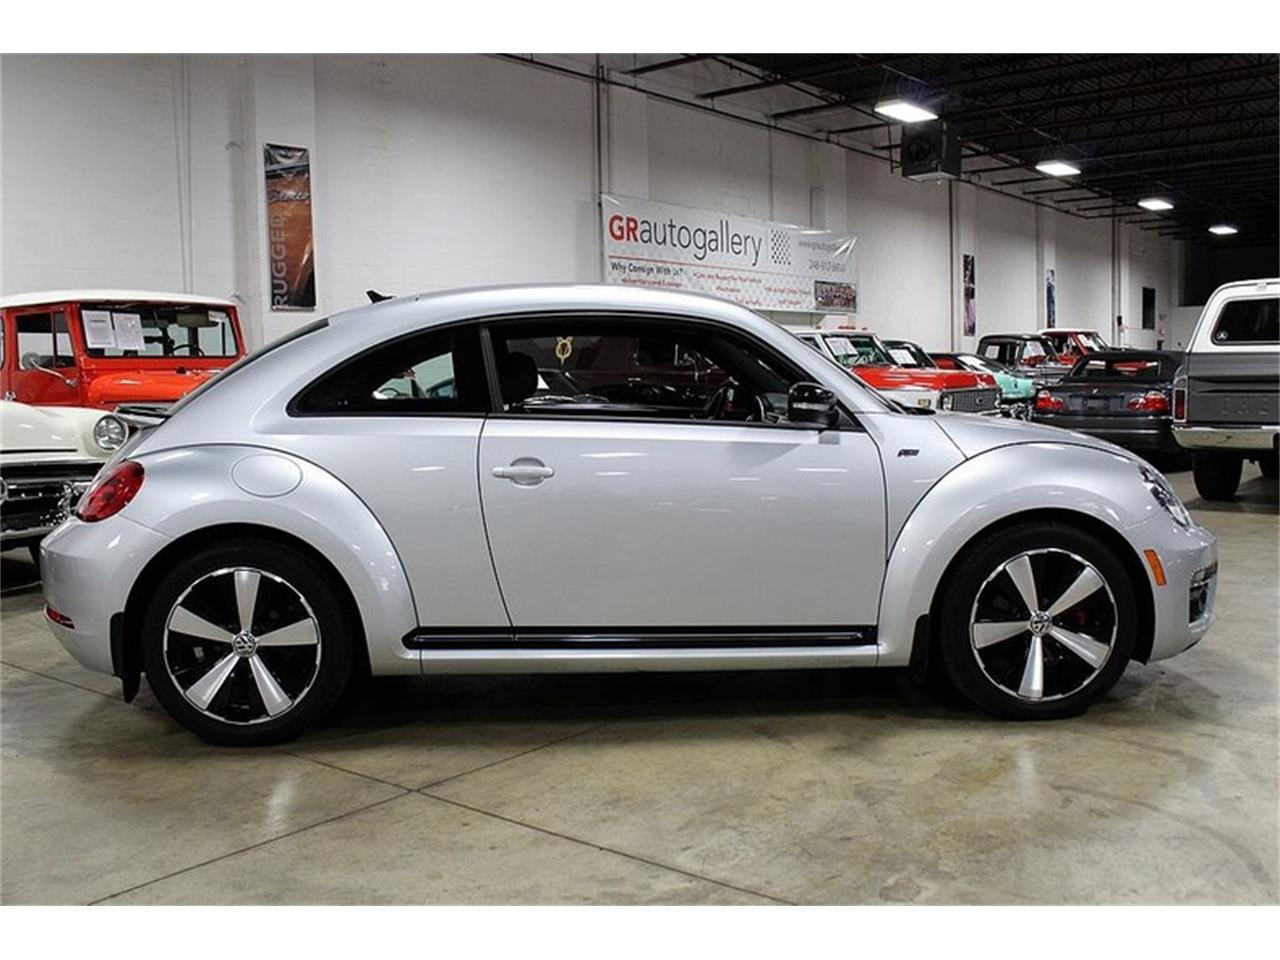 Large Picture of 2014 Volkswagen Beetle - $15,900.00 Offered by GR Auto Gallery - OIFD